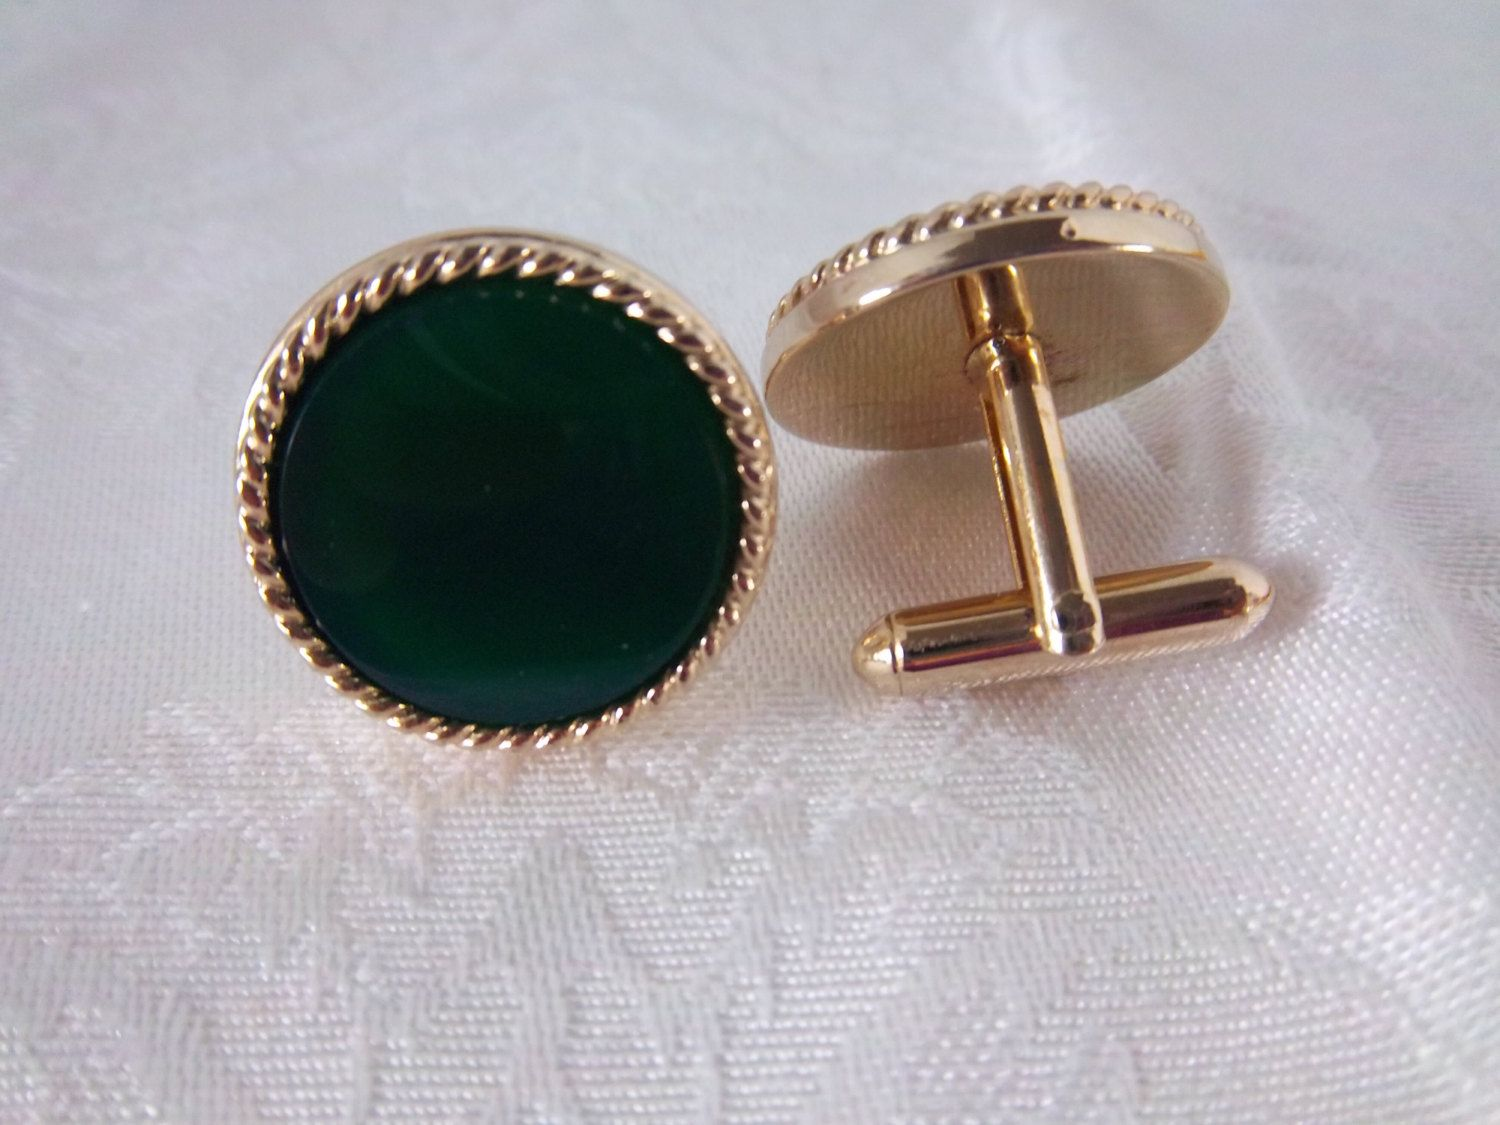 7e14a8a966e2 Vintage Hunters Green Glass Cufflinks, Marked S, Possible Swank, Gold Tone  Wedding Cuff Links, Father's Day by Sarasvintageattic on Etsy